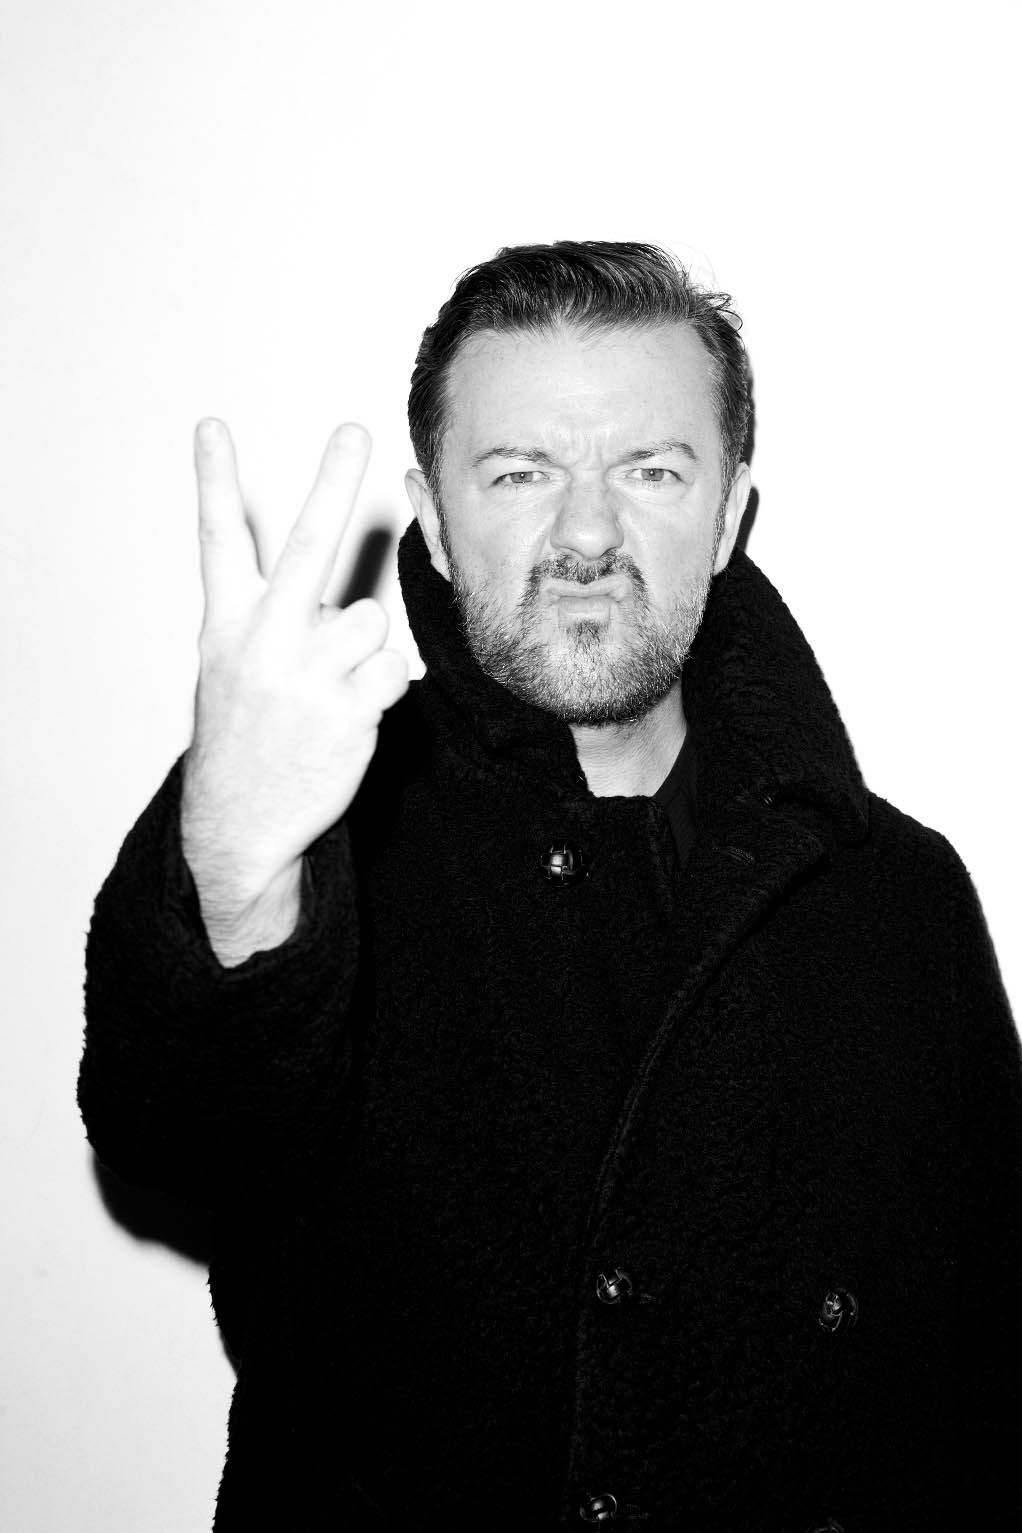 Forum on this topic: Linda Watkins, ricky-gervais-born-1961/